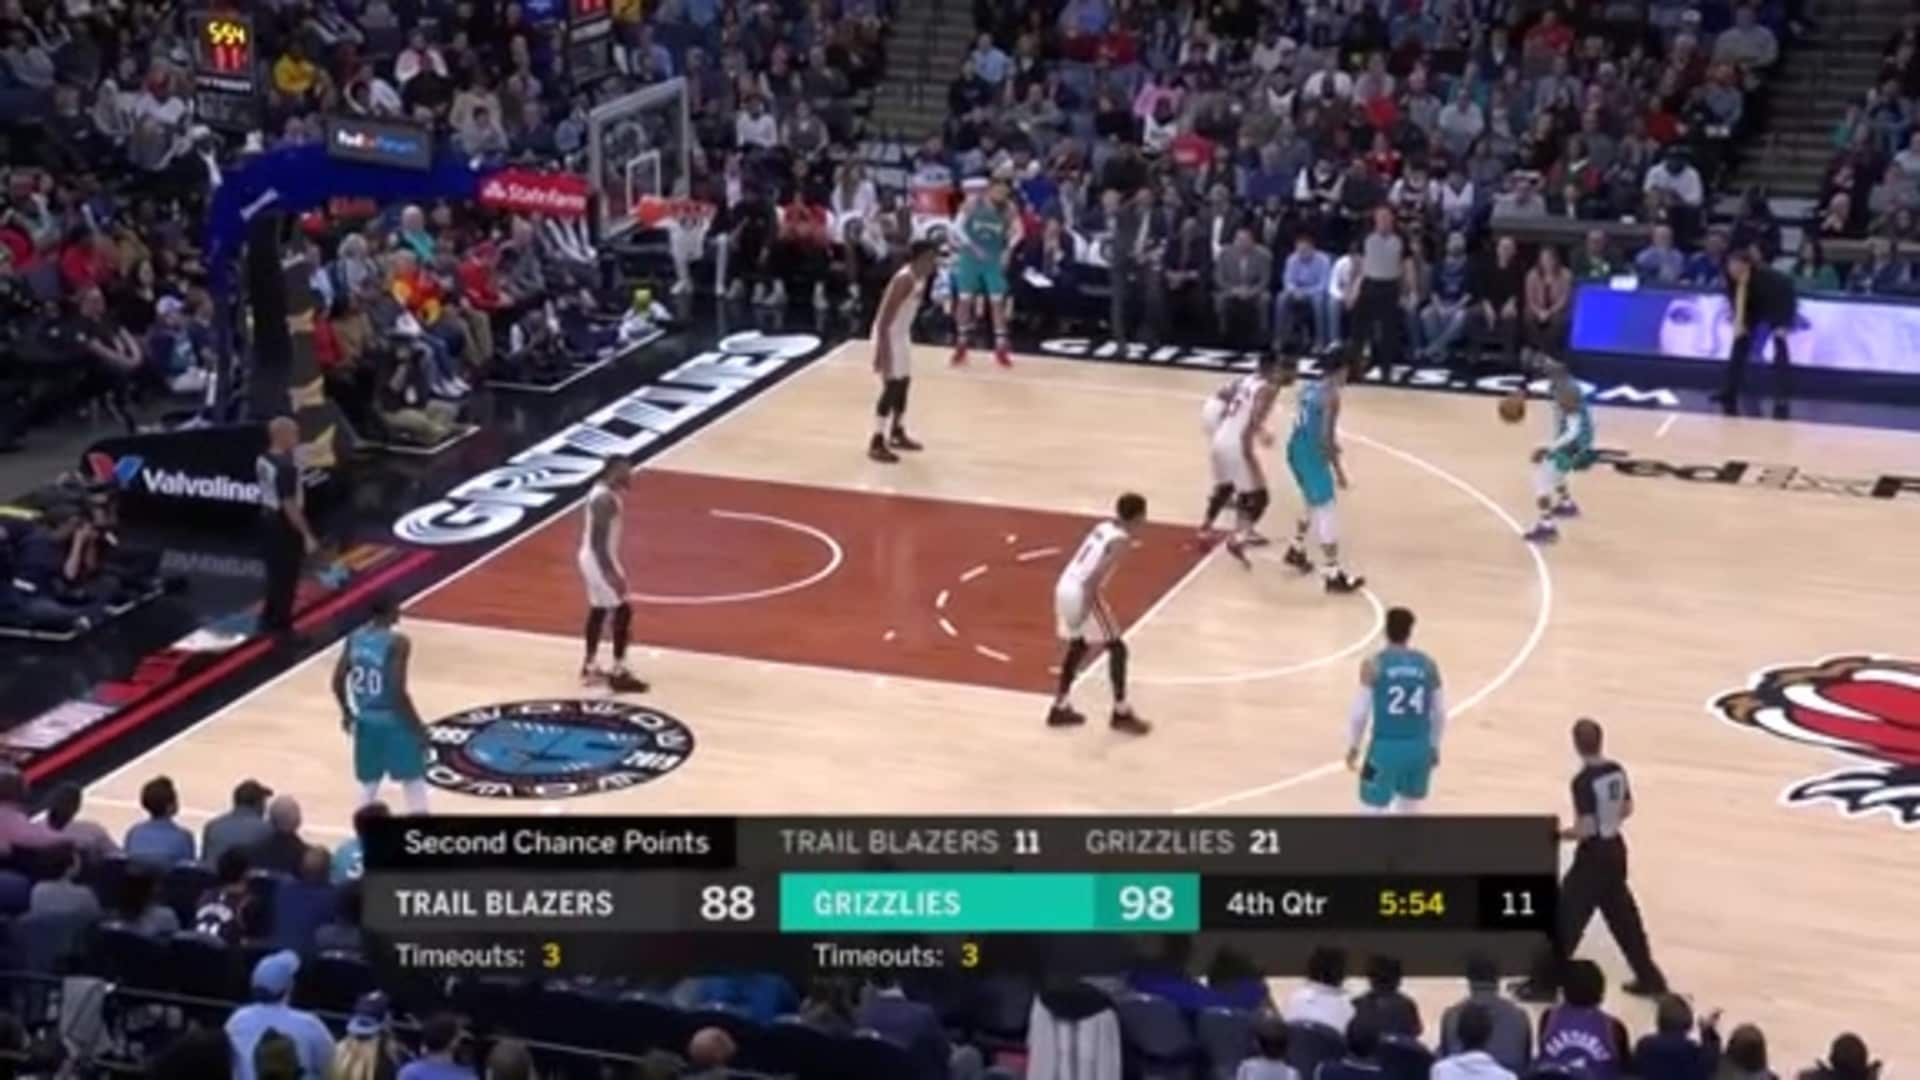 Brandon Clarke is on fire with another slam